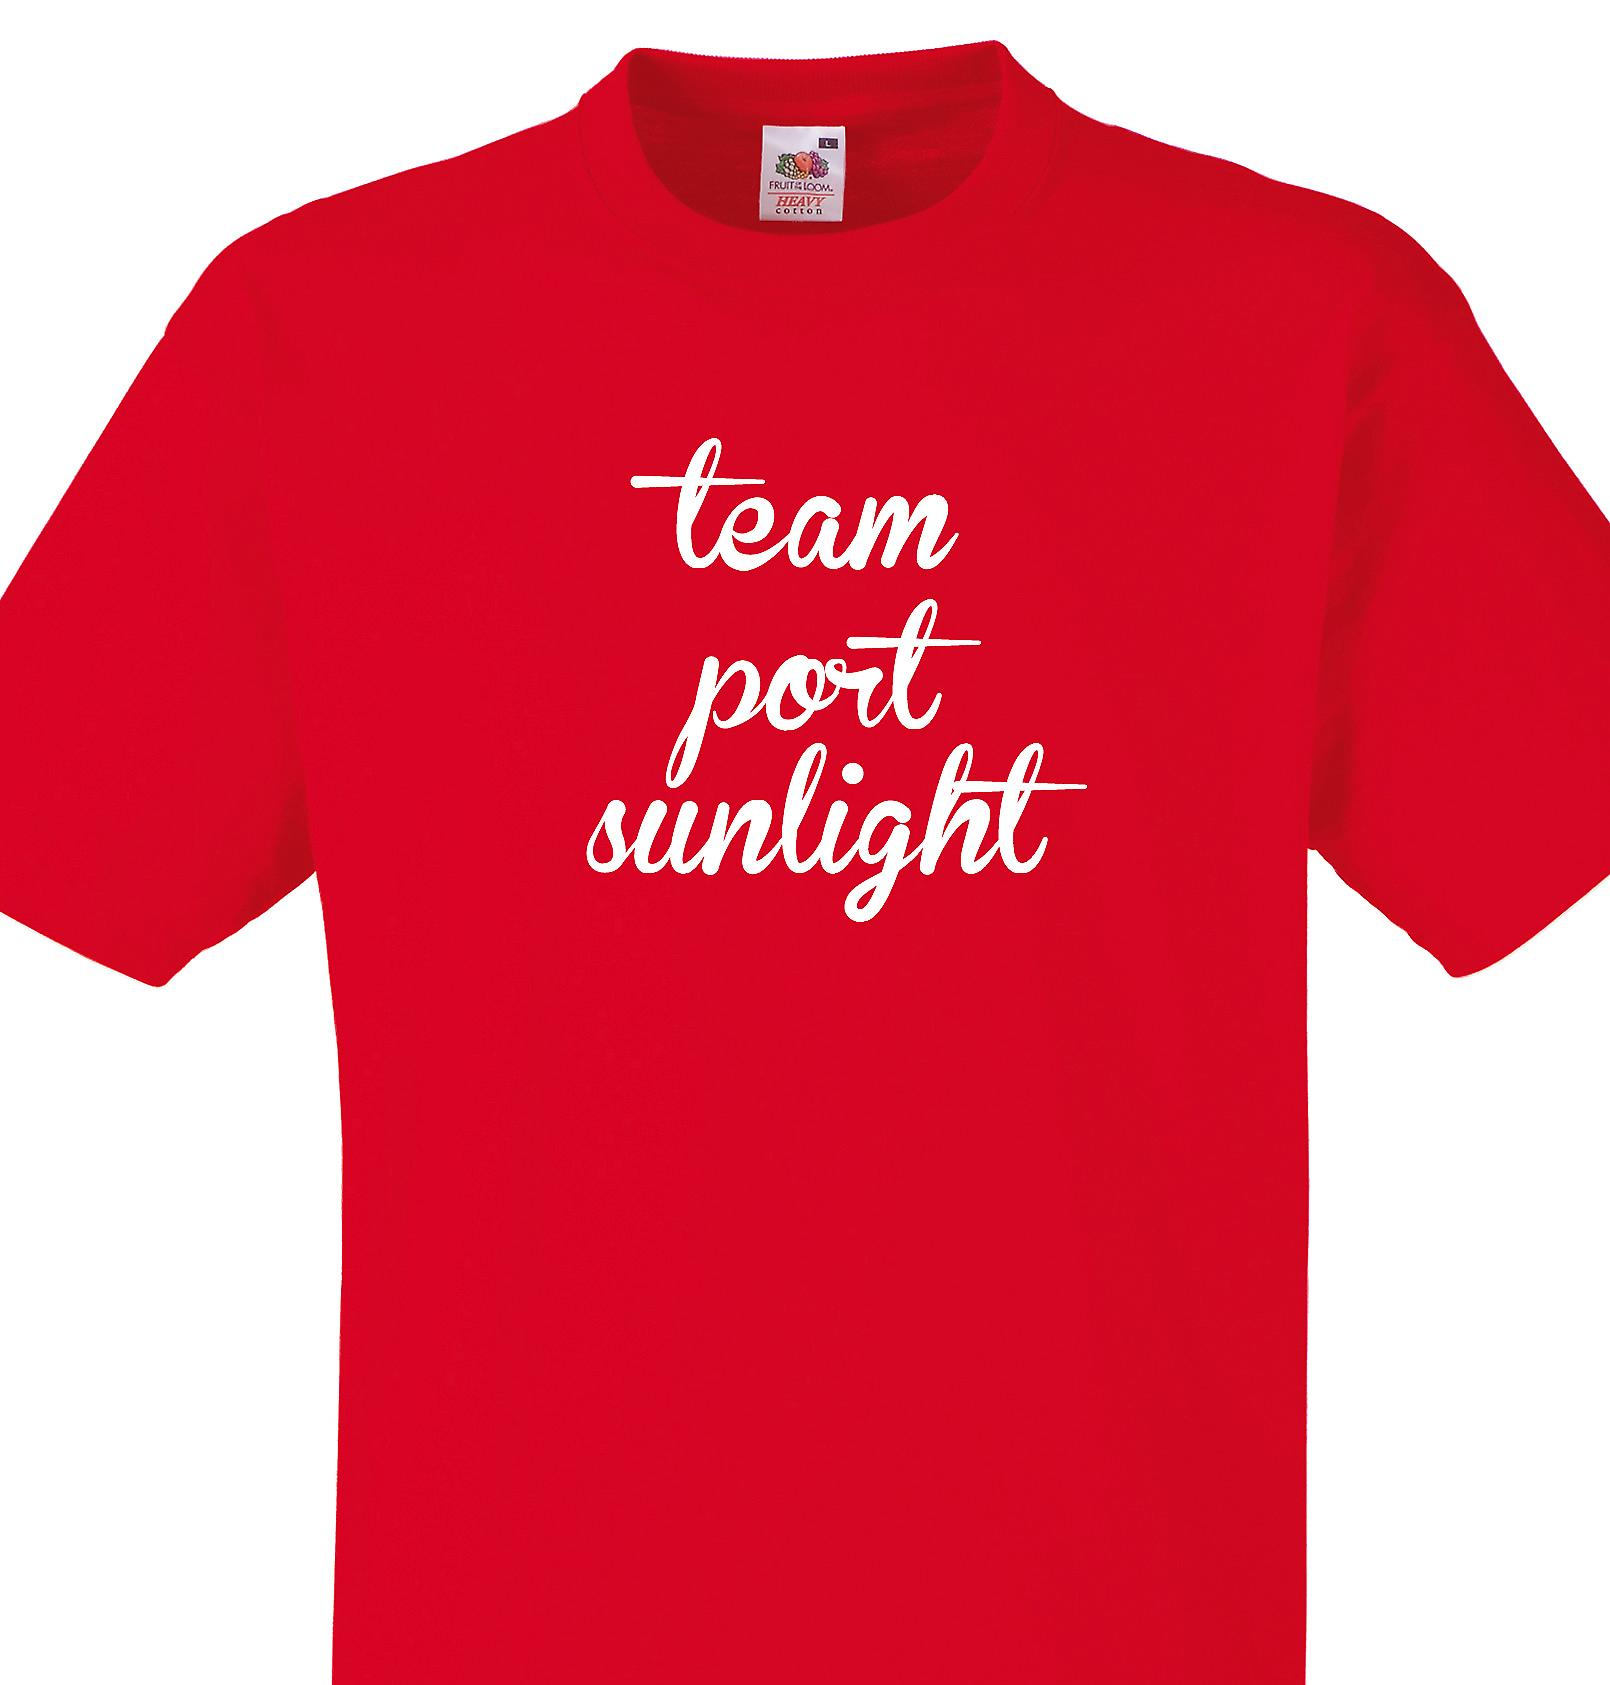 Team Port sunlight Red T shirt